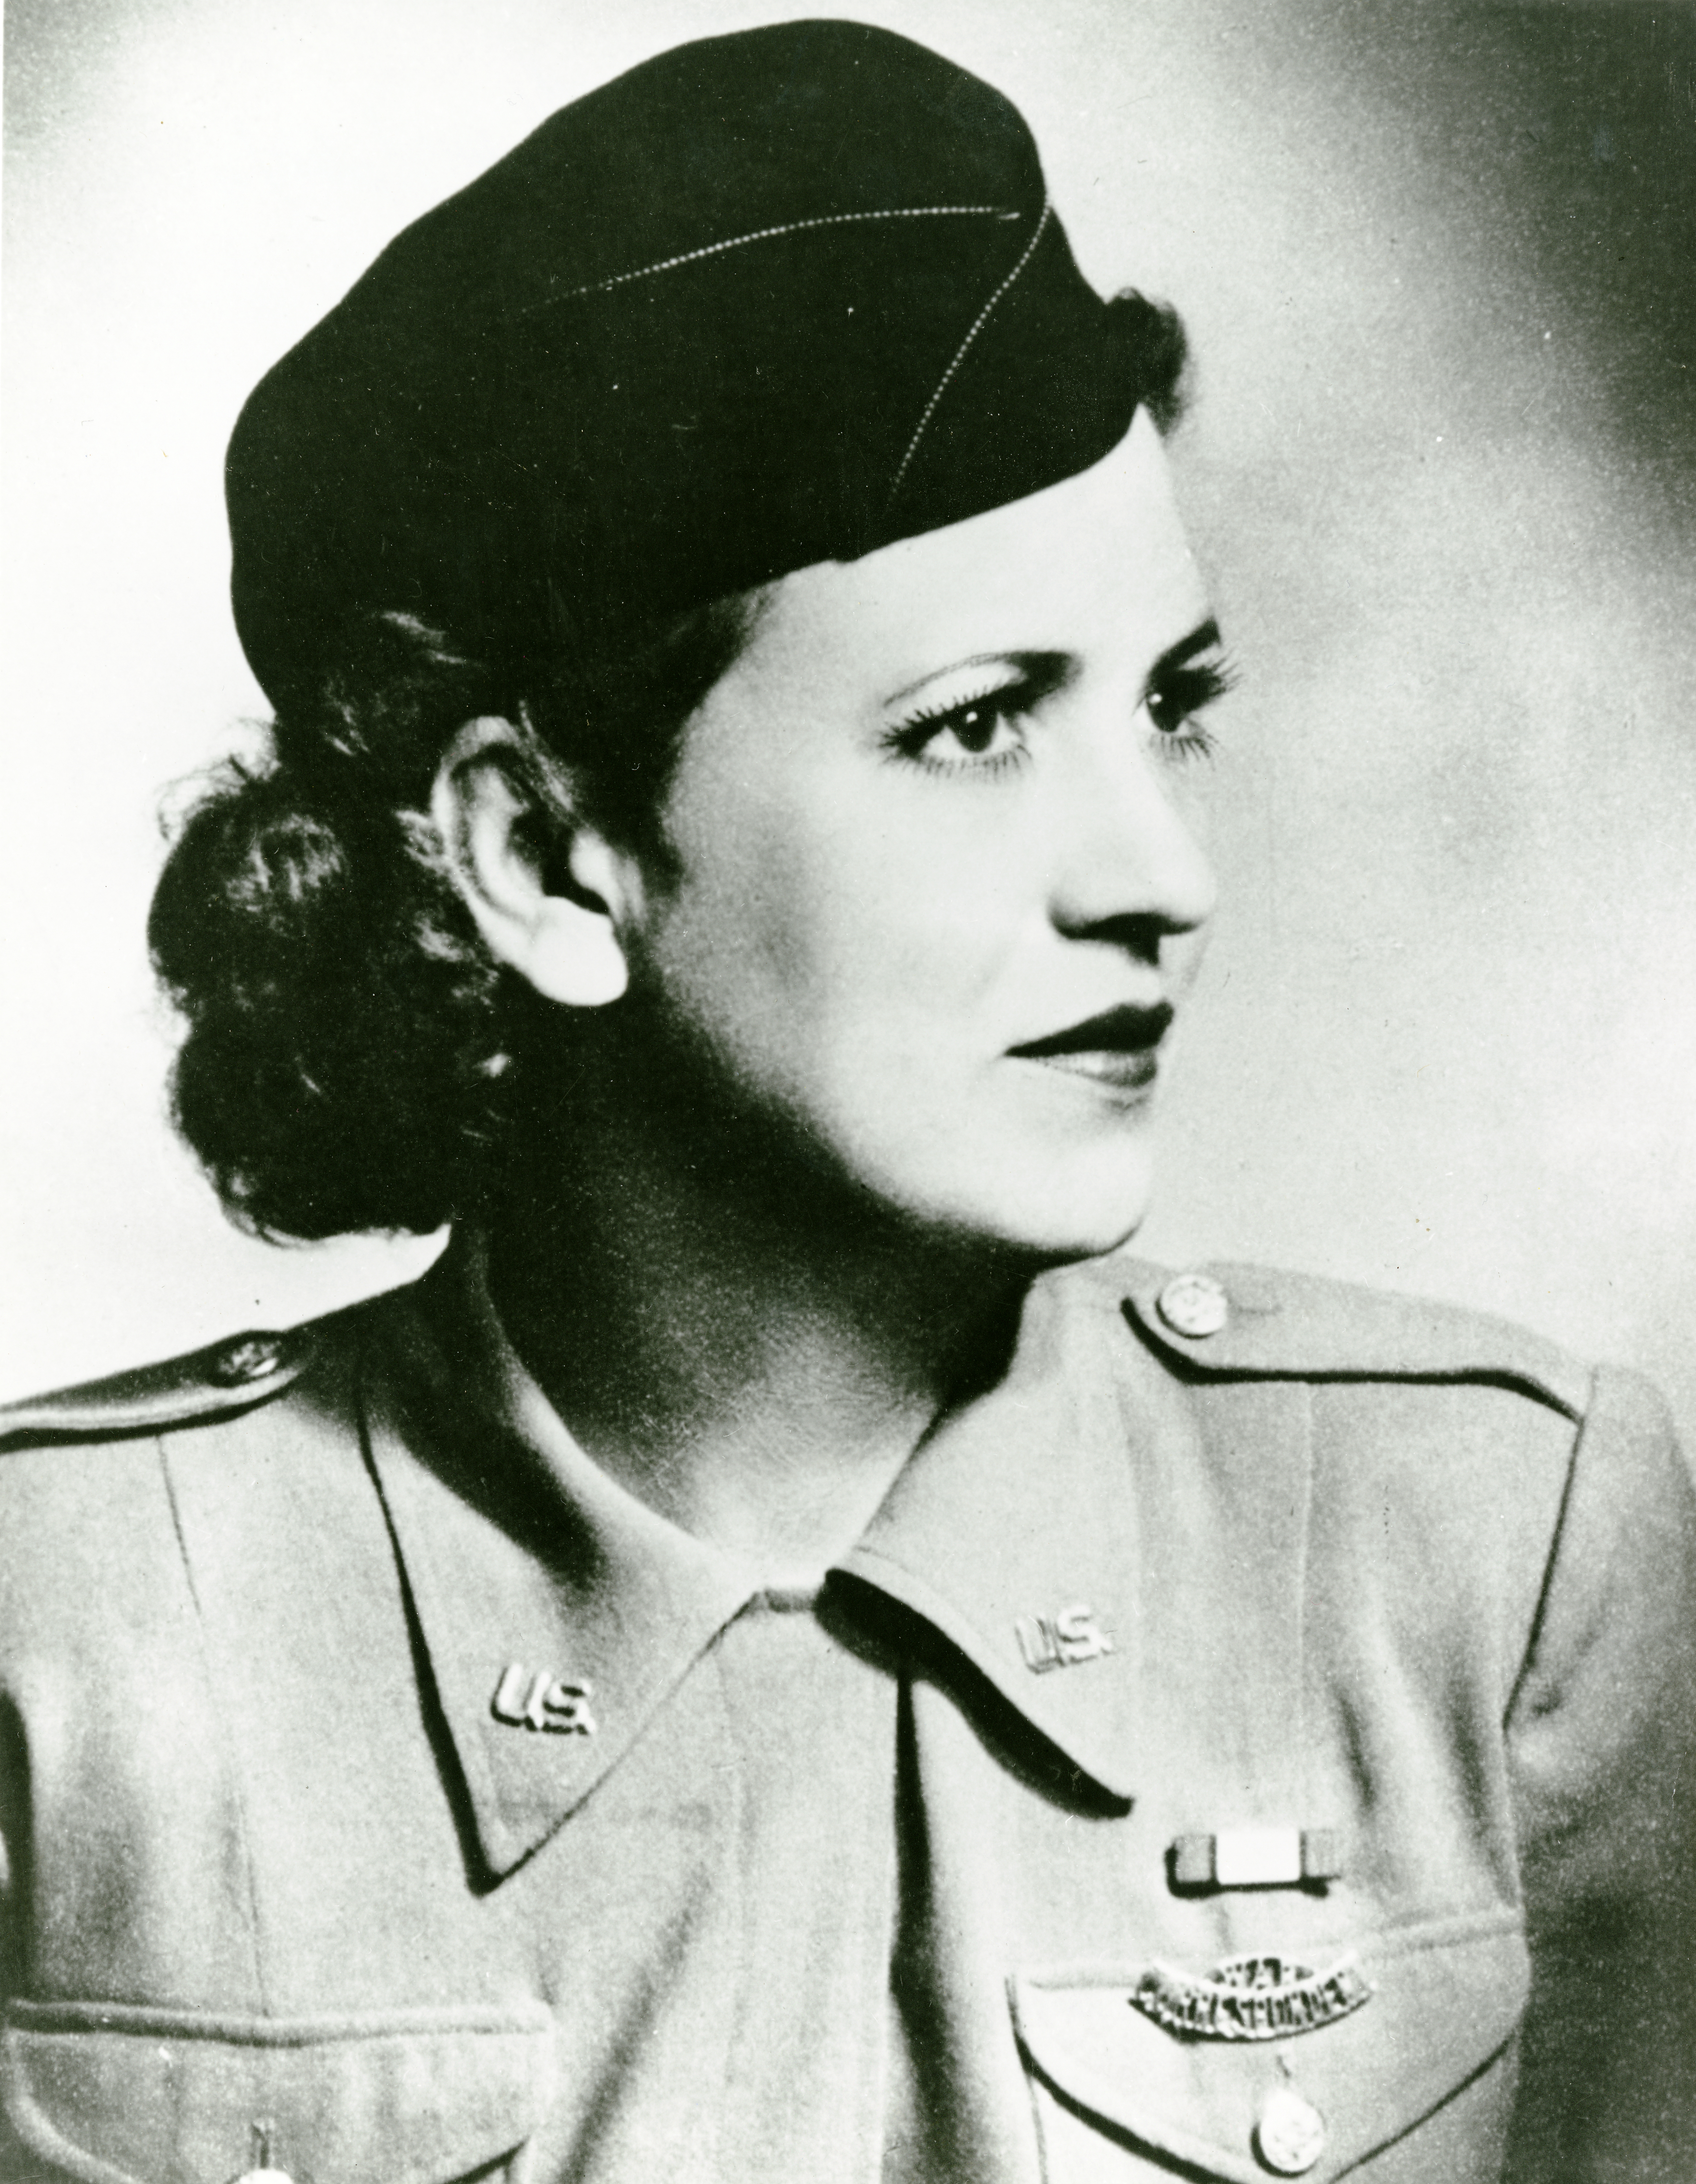 Black and white photo of Jacqueline Cochran